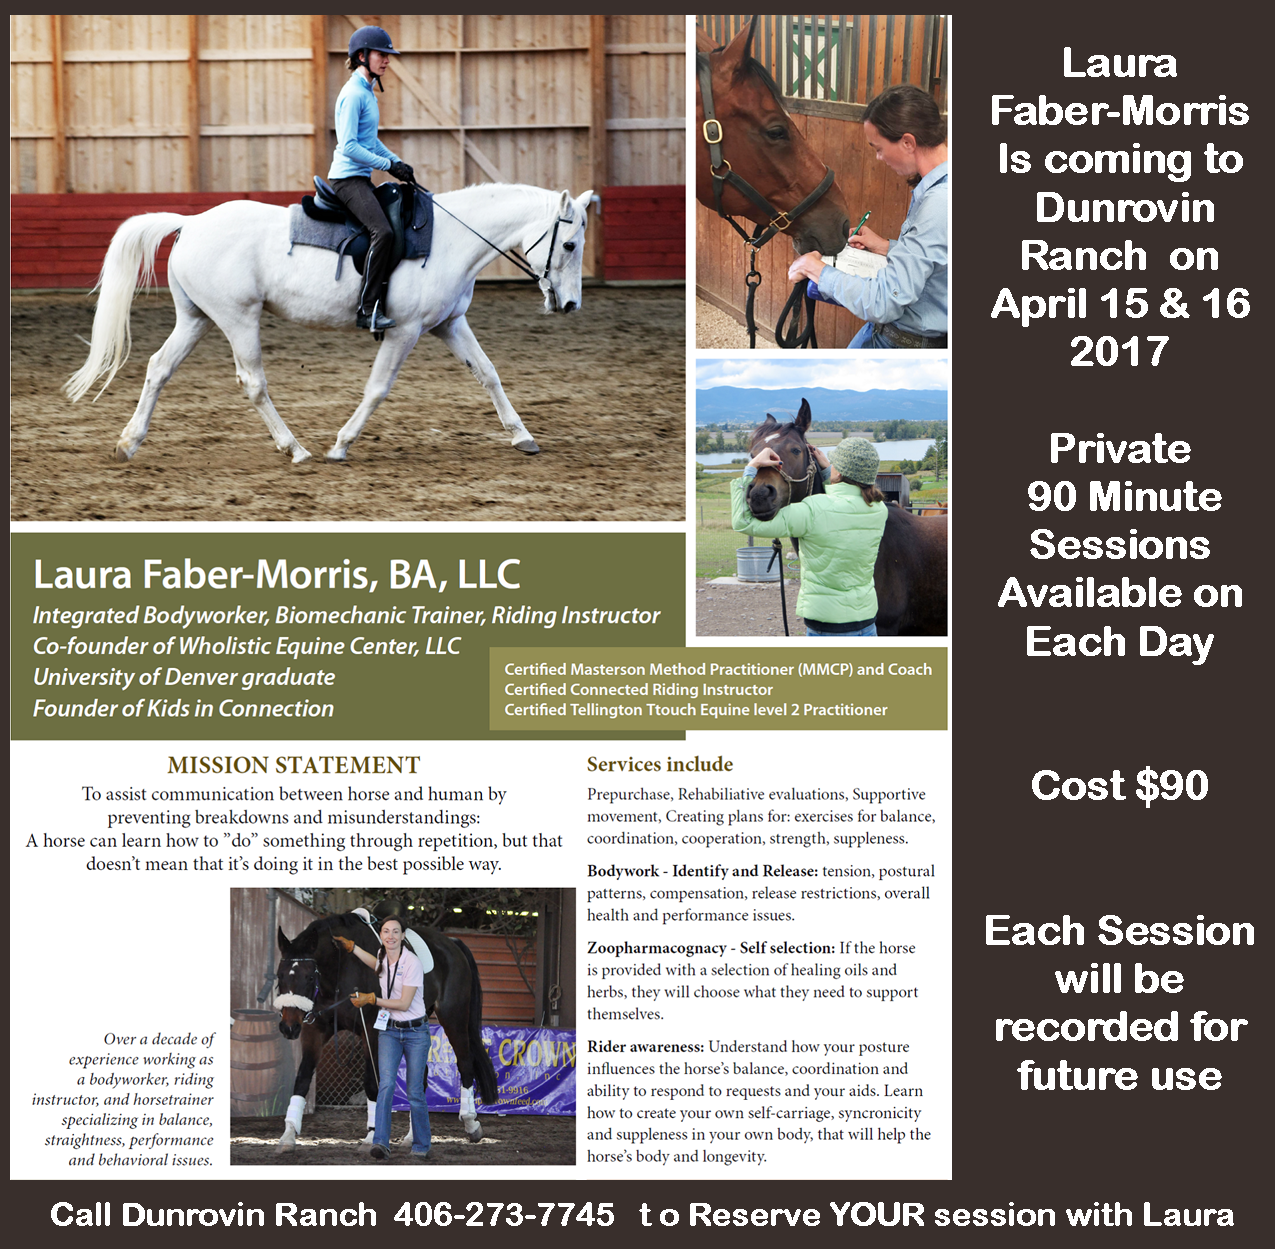 2017_FB Flyer for Laura Faber-Morris-cropped